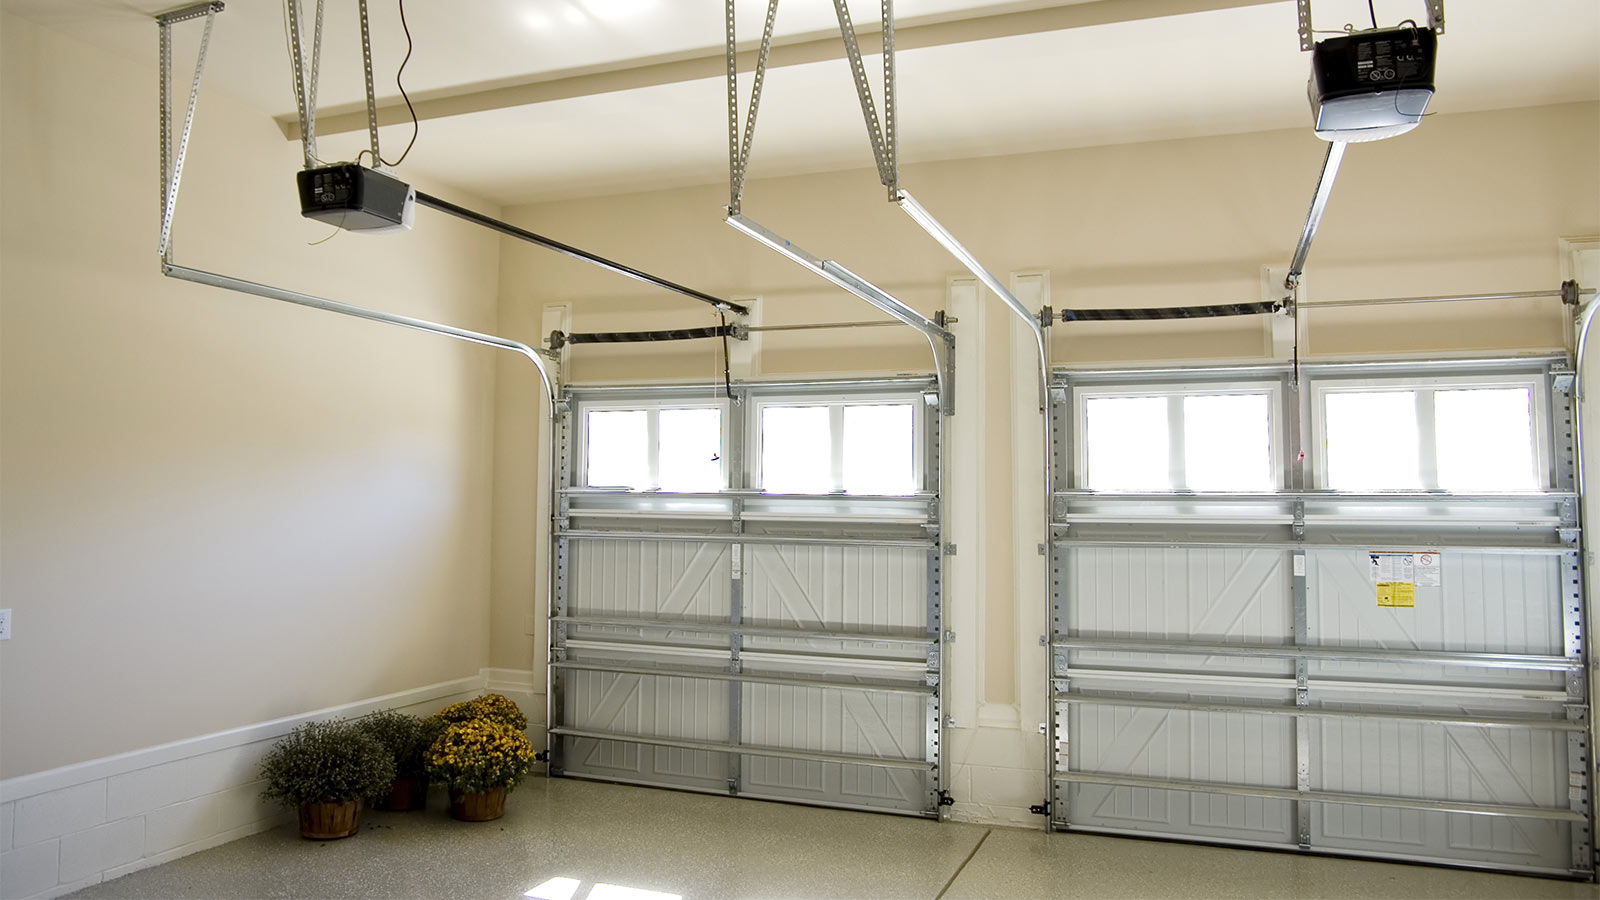 Sectional Garage Doors from Electric Roller Garage Doors Suffolk suppliers.